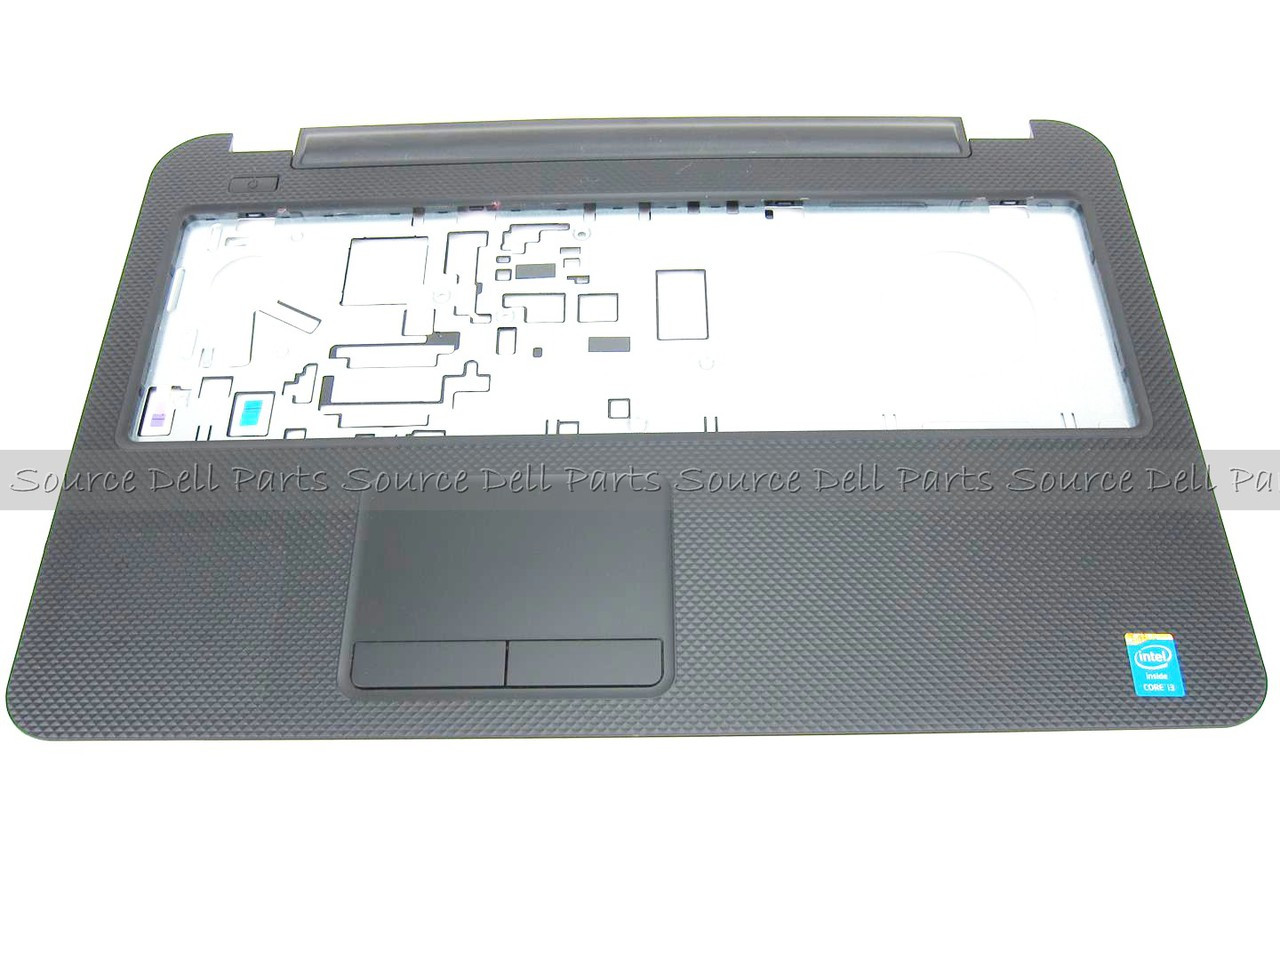 Dell Inspiron 17 3737 Palmrest and Touchpad Assembly - H7CH9 (B)